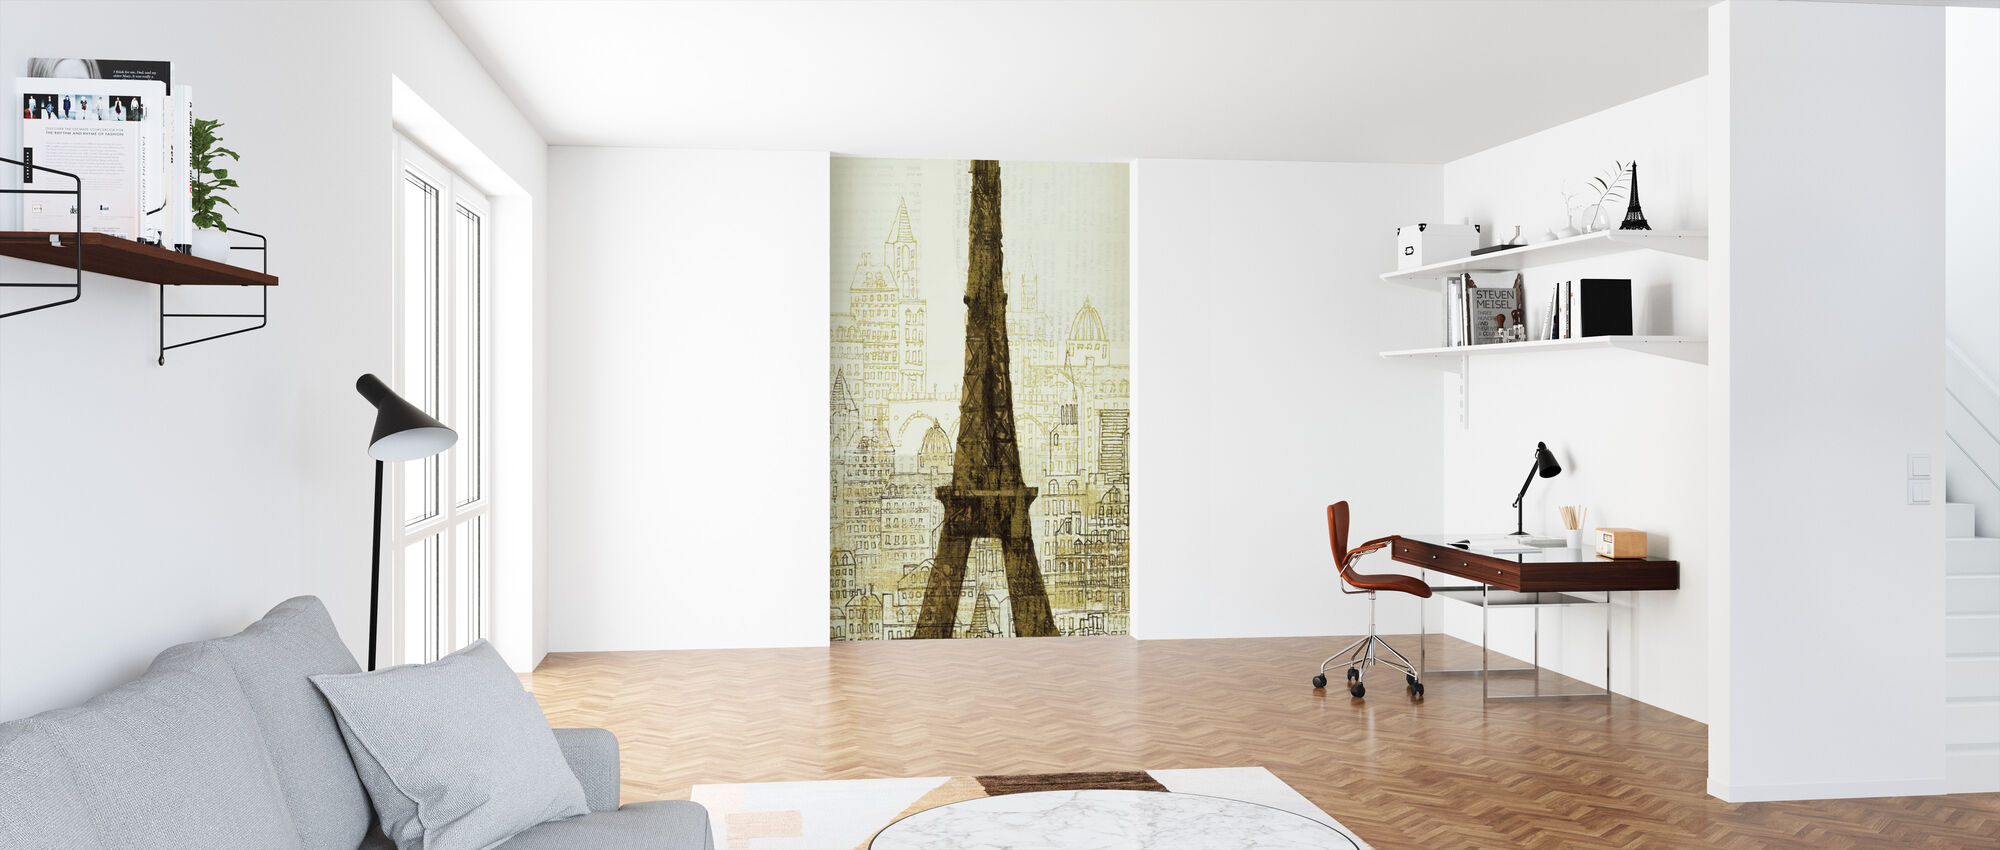 Avery Tillmon - 5th Avenue Anatole - Wallpaper - Office